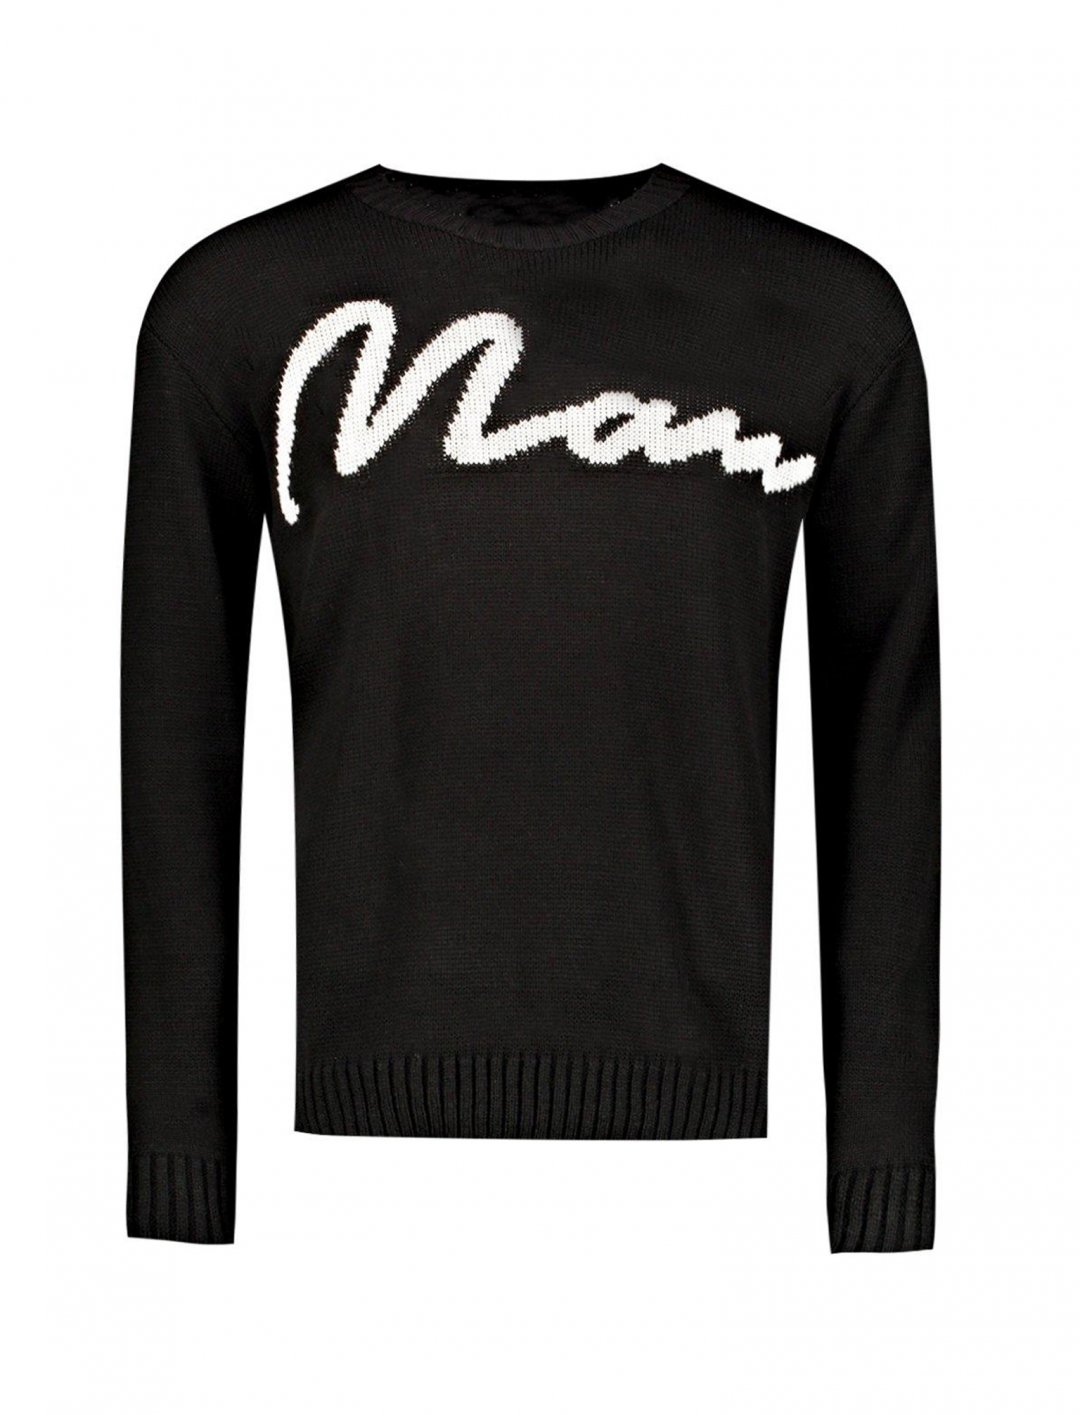 "Knitted Sweater {""id"":5,""product_section_id"":1,""name"":""Clothing"",""order"":5} boohoo"